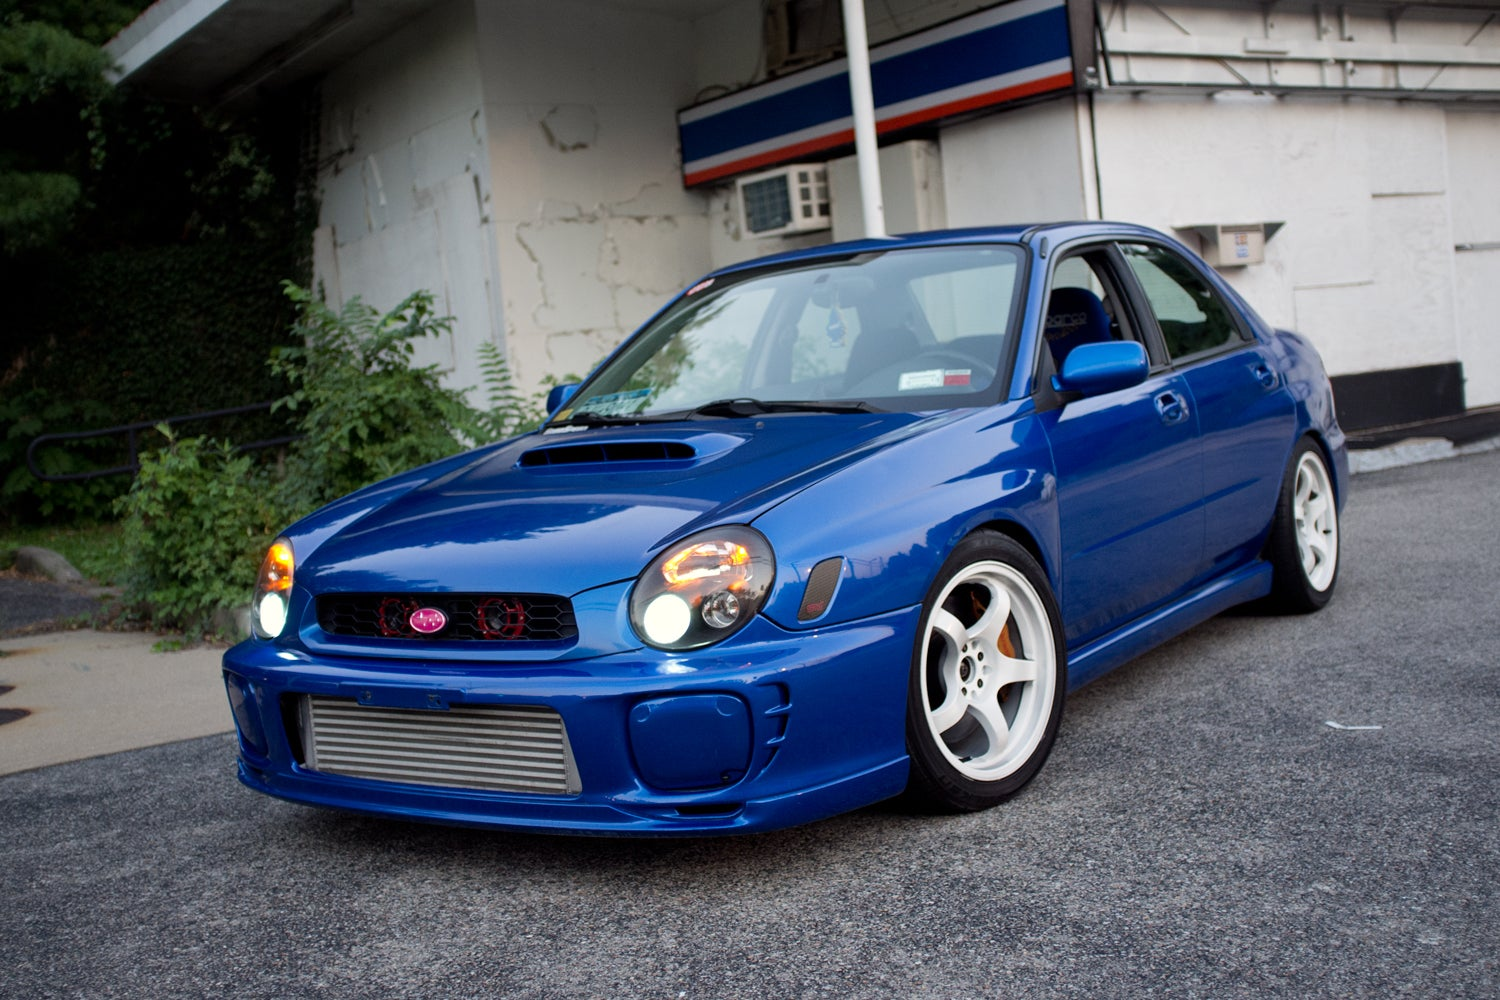 2000 subaru forester slammed with Bugeye Blue 699288195 on 1998 Forester L My Work Progress 102919 furthermore 224008 Pics Of Bagged Minis 3 together with Getting It Jays Bagged Subaru Legacy Outback in addition 2113 Tuning Audi A4 B5 moreover What Exactly Available Lifting Usdm Forester 484609.